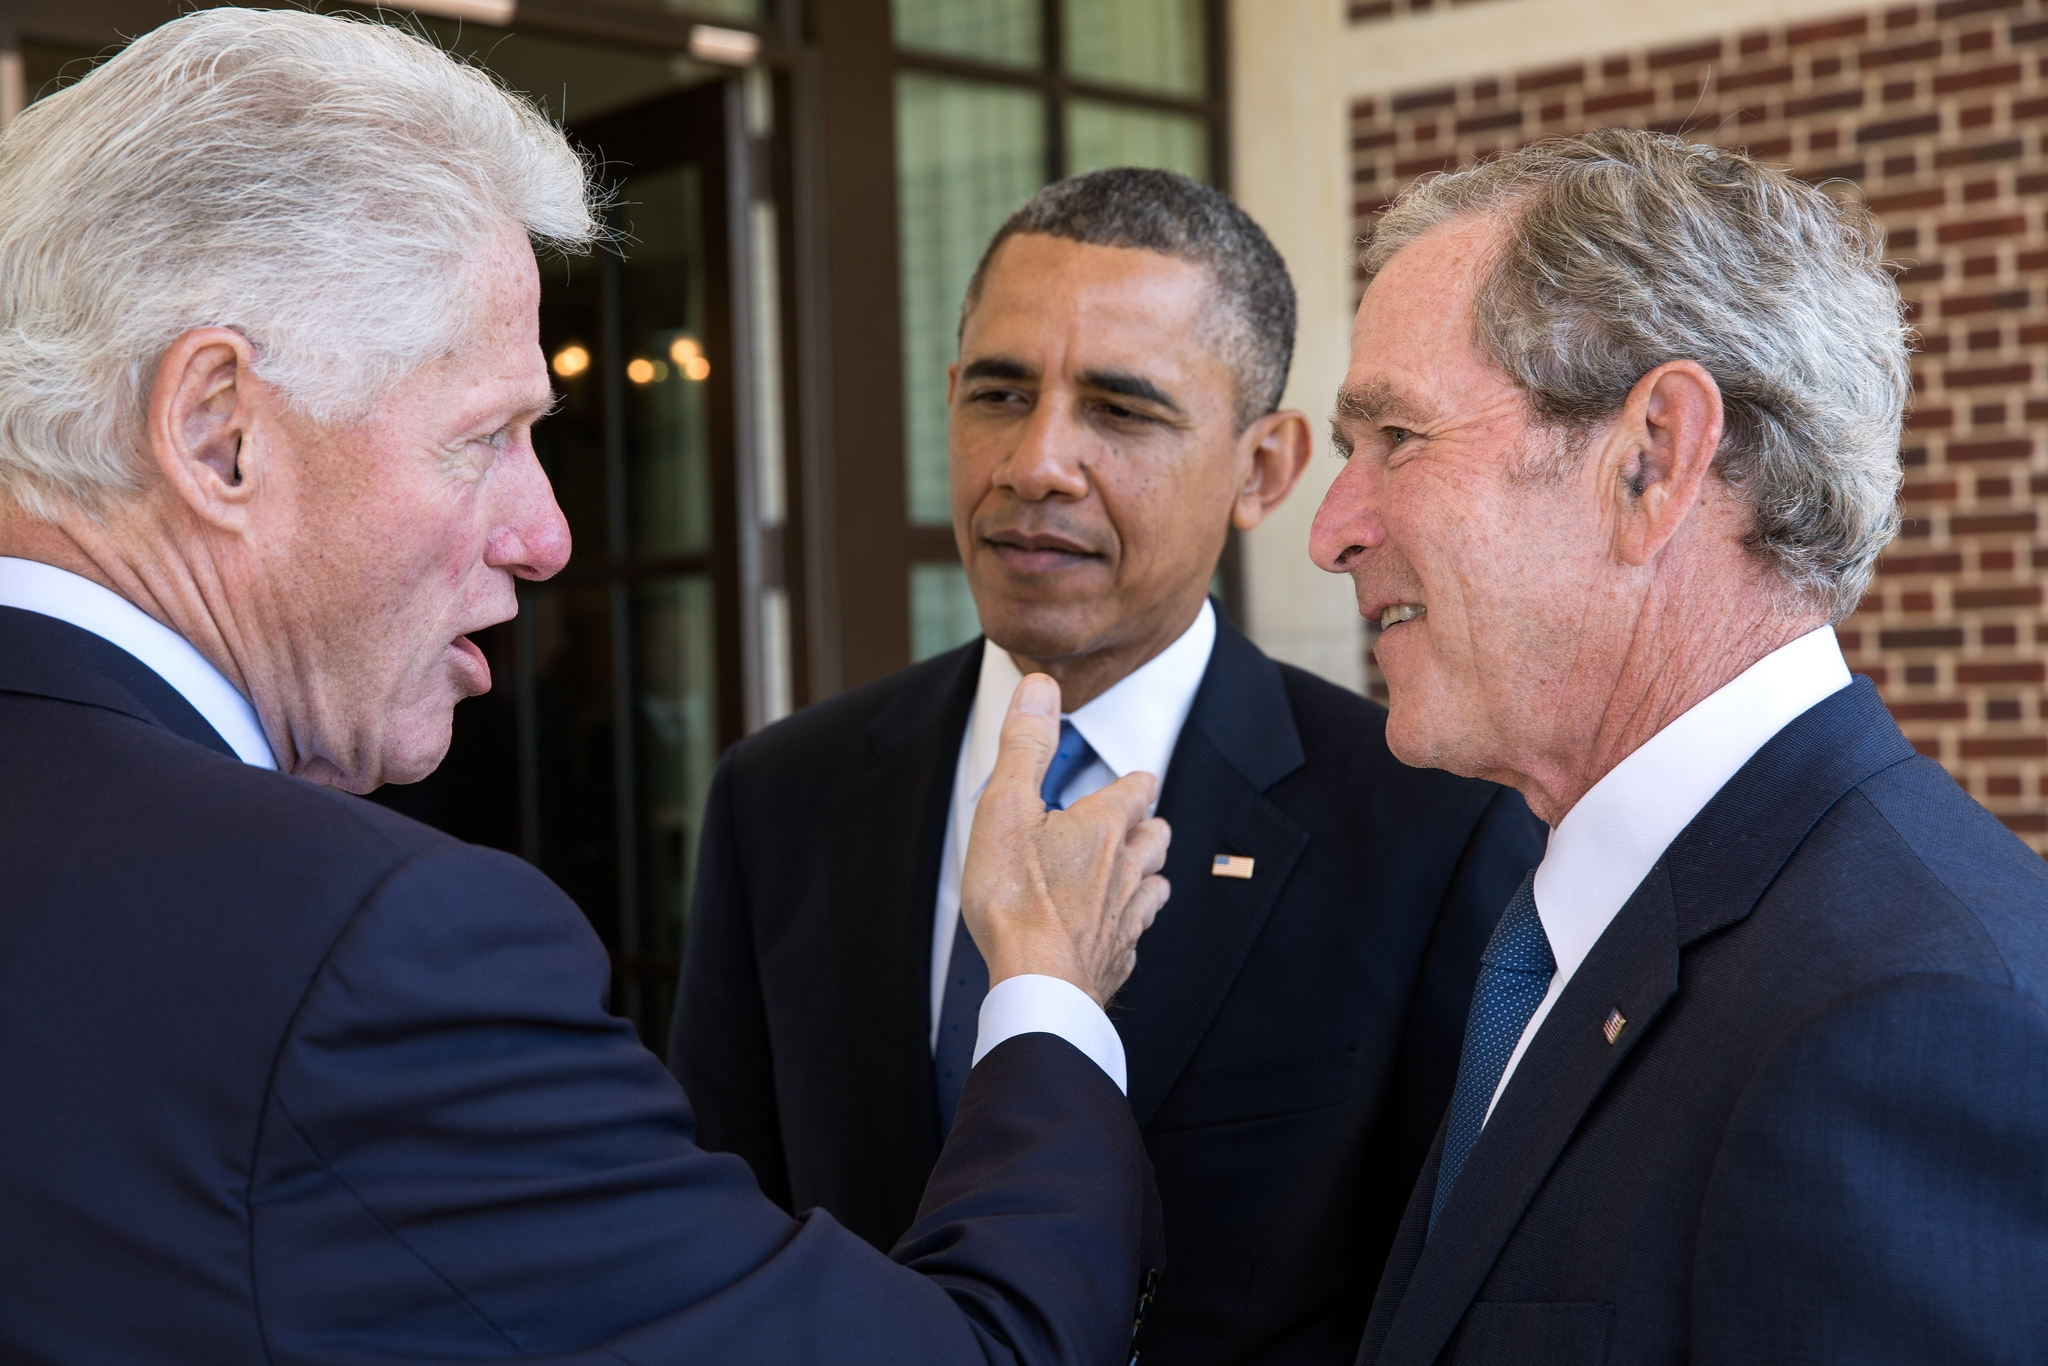 Prezydenci Clinton, Obama i Bush (fot. The White House / http://bit.ly/1zZ2hw0)